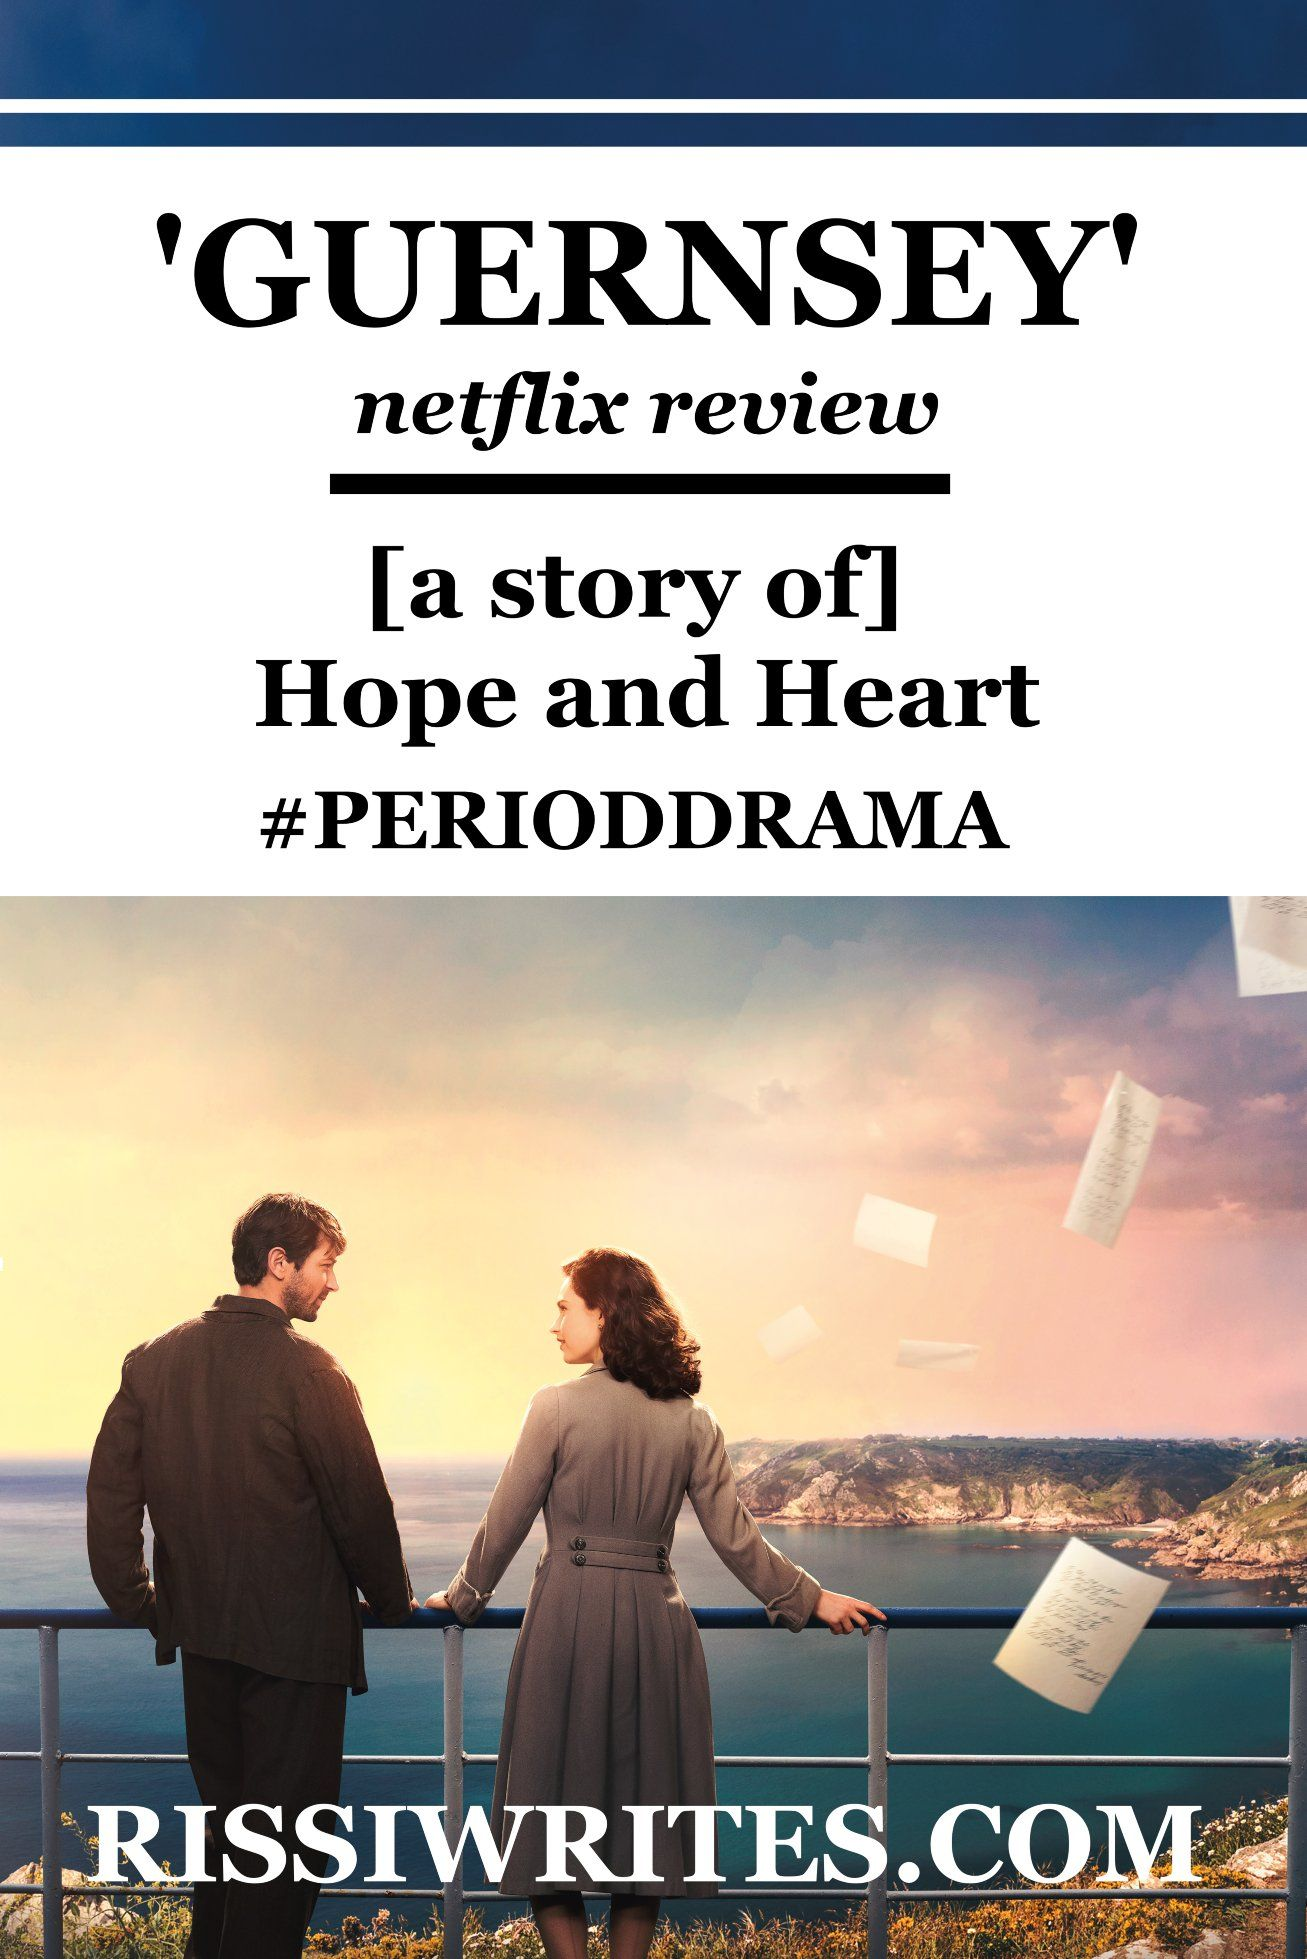 The Guernsey Literary & Potato Peel Pie Society Hope and